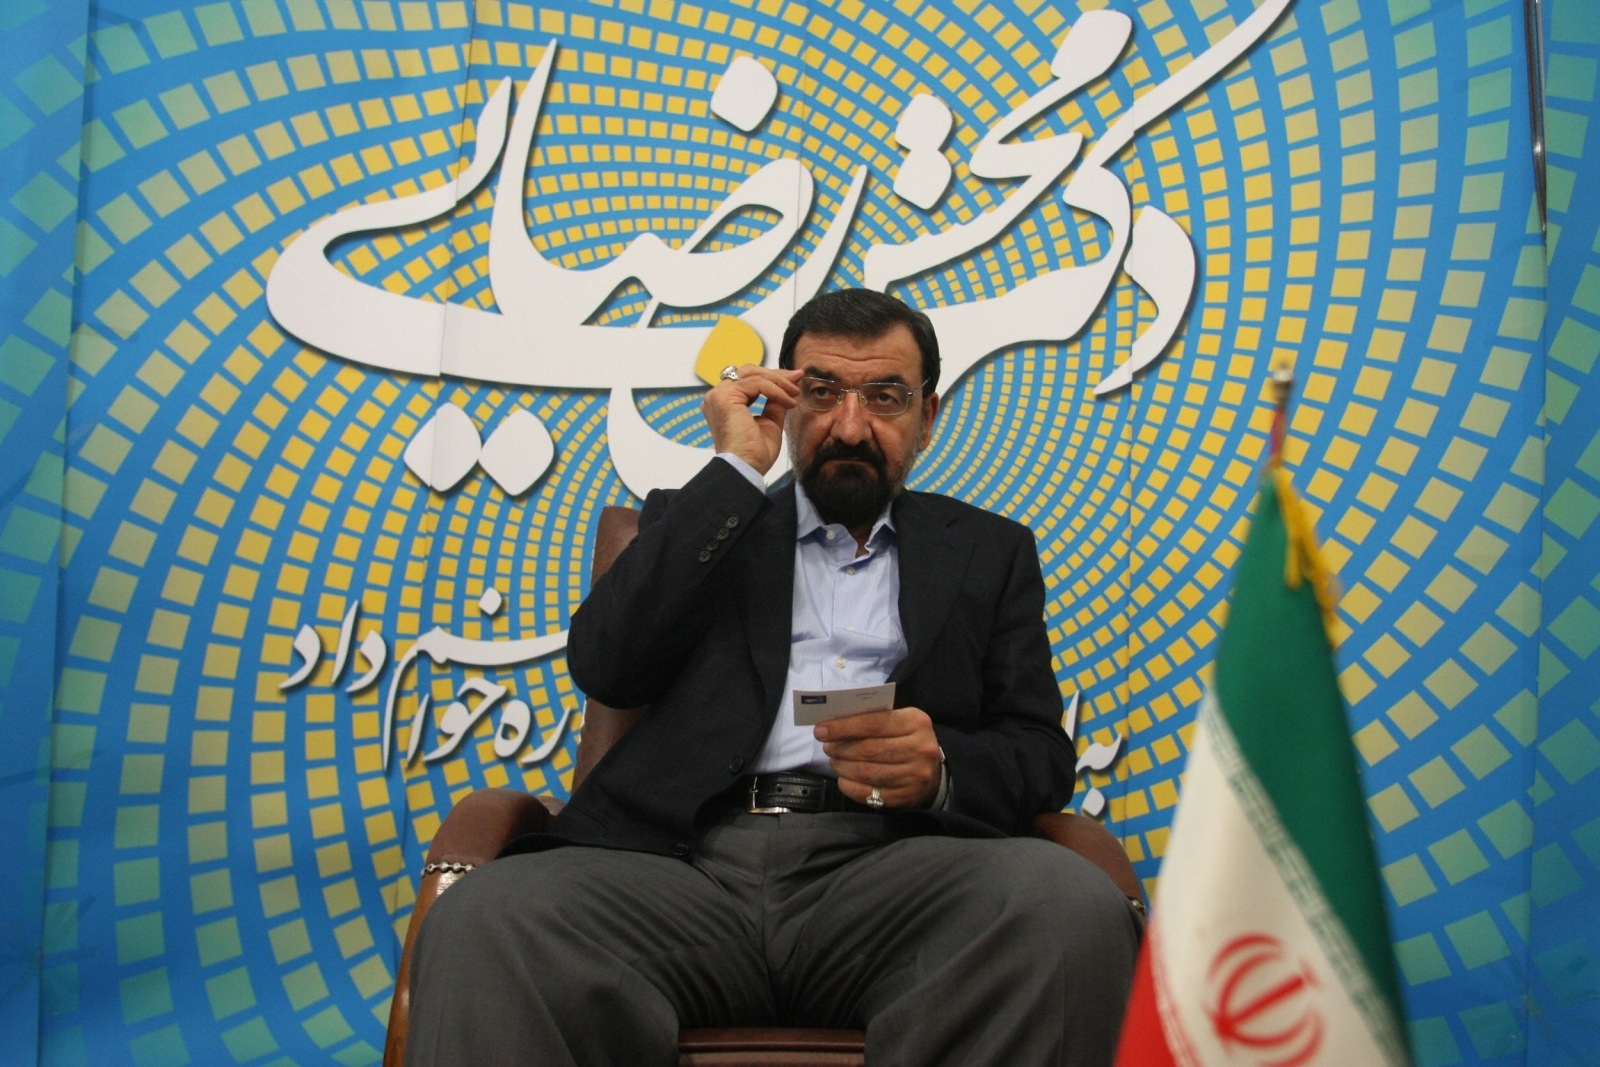 Iran鈥檚 influential Mohsen Rezaie threatened to raze Tel Aviv if Prime Minister Benjamin Netanyahu made the 鈥渟lightest unwise move鈥� against it